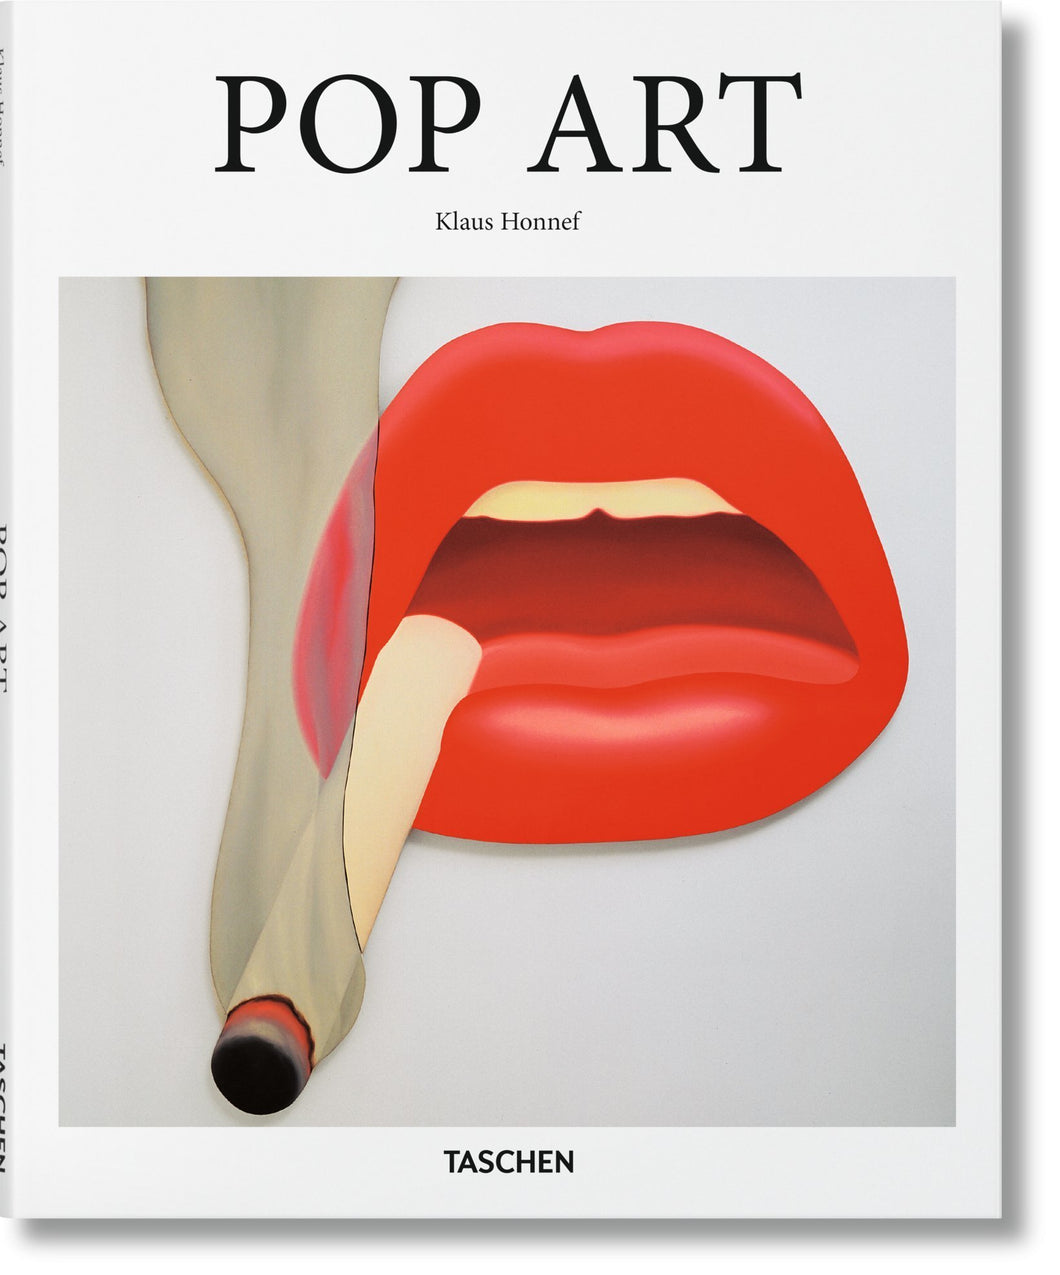 Pop Art (Basic Art) by Klaus Honnef (Hardcover)